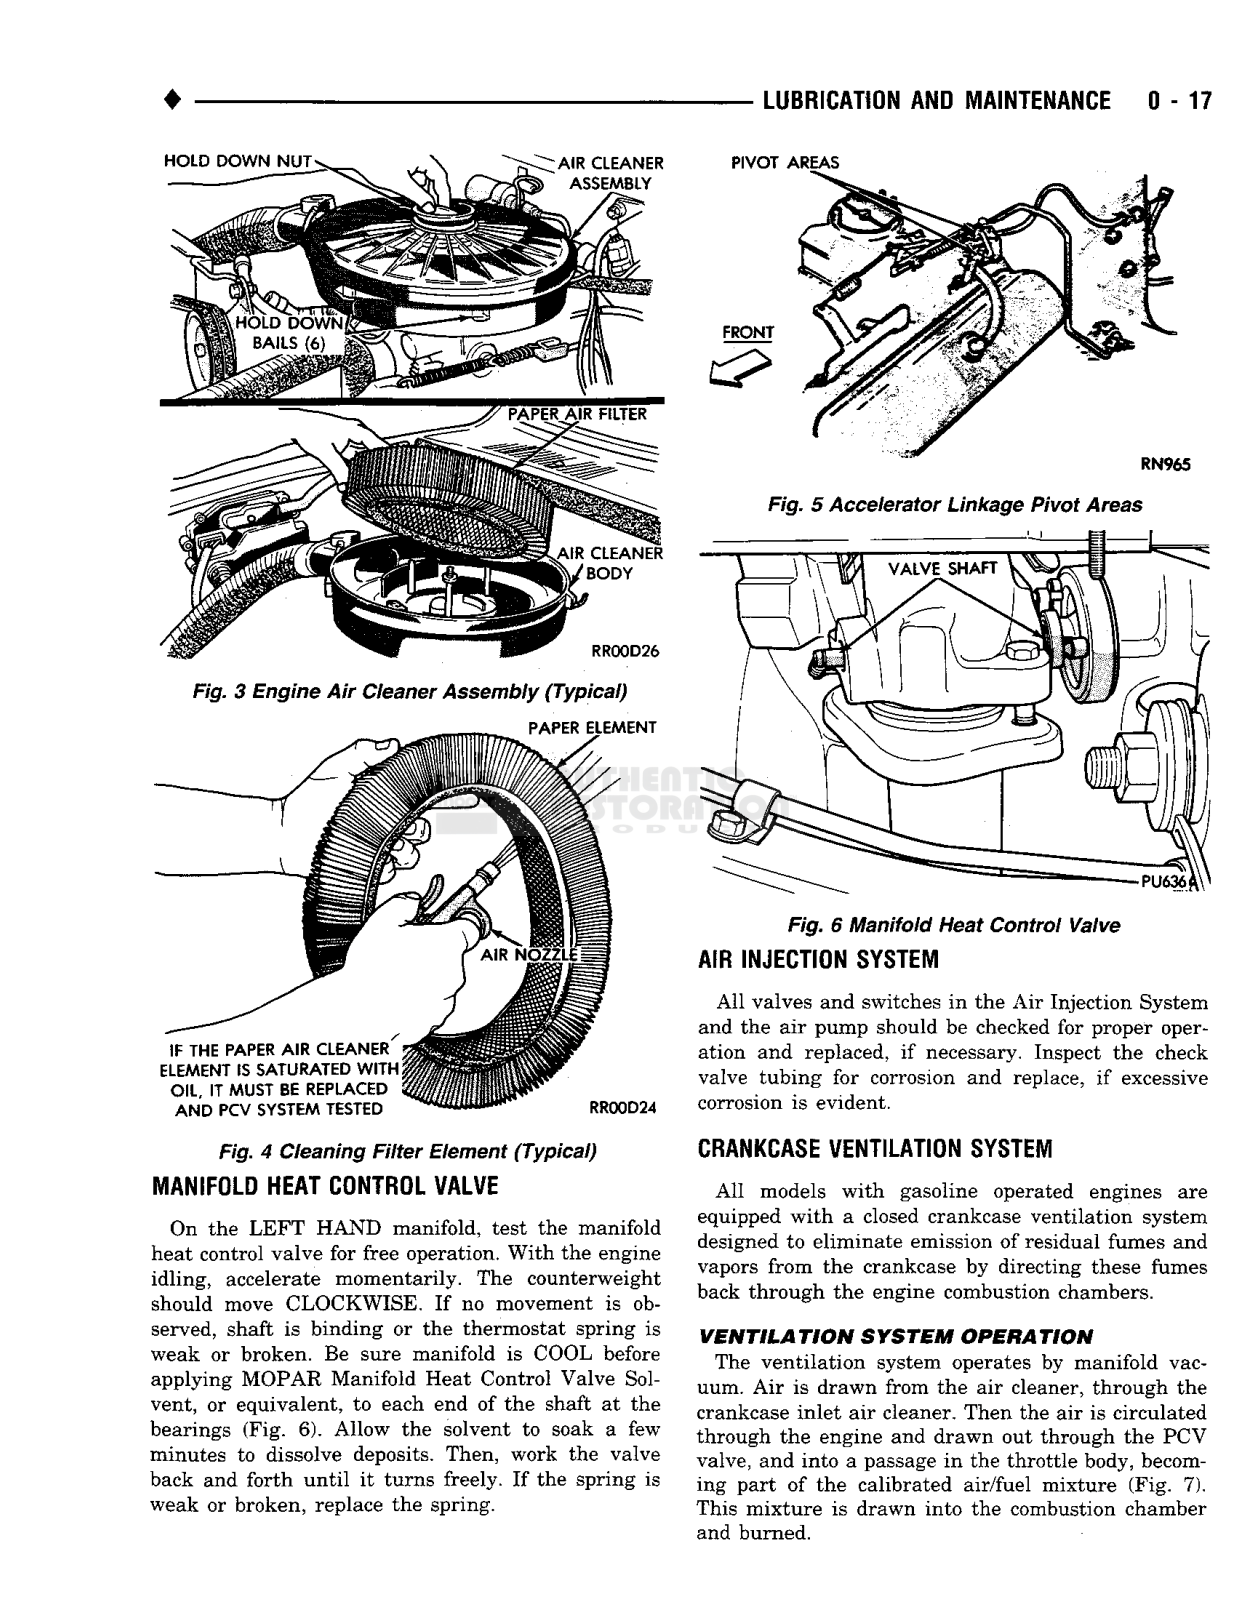 Dodge Dakota 1990, RAM 1990 Repair Manual